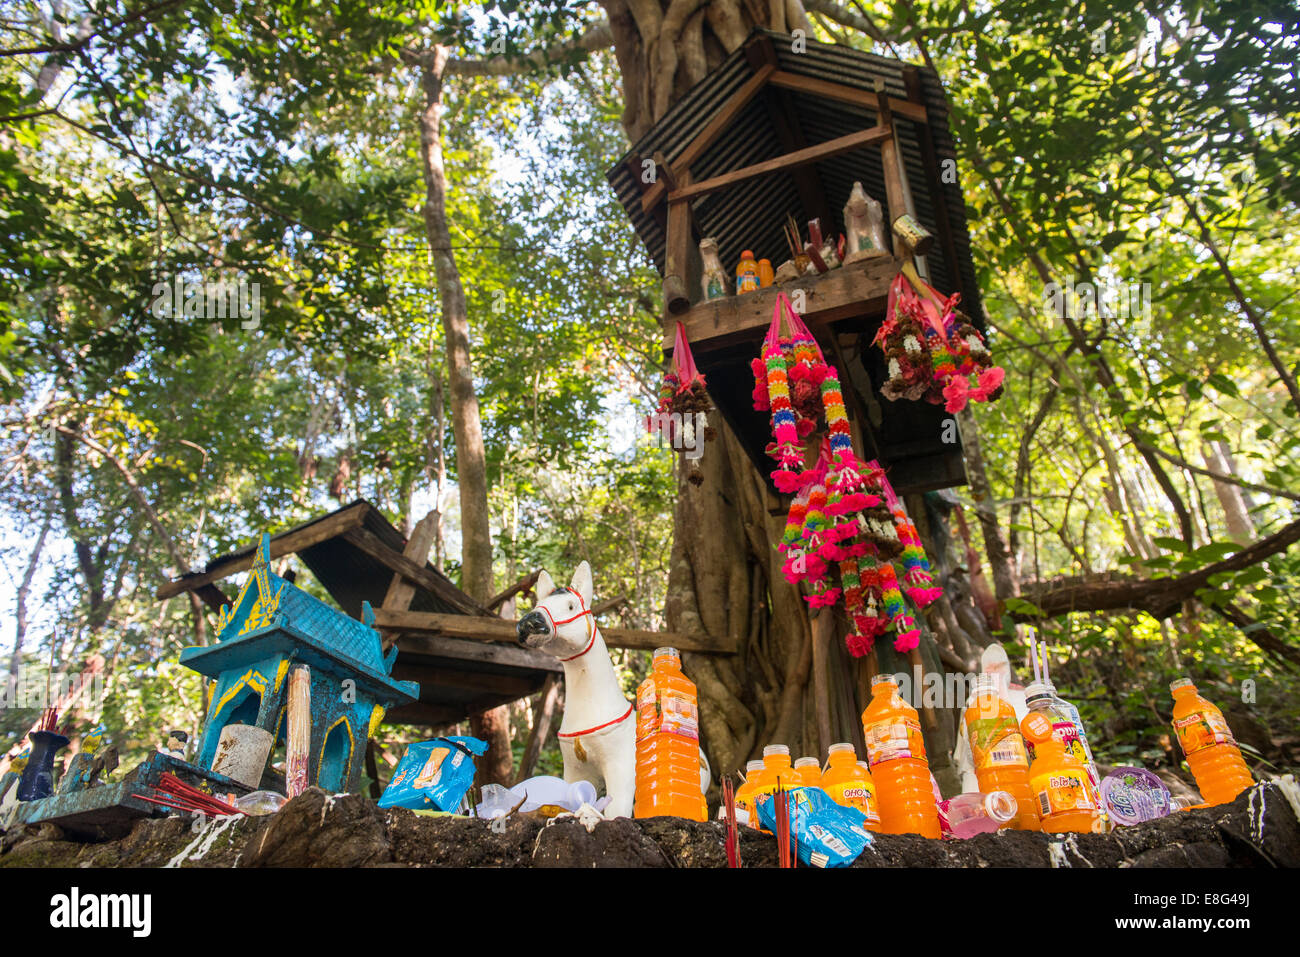 Spiritual small house in Thailand, Soppong, Mae Hong Son - Stock Image